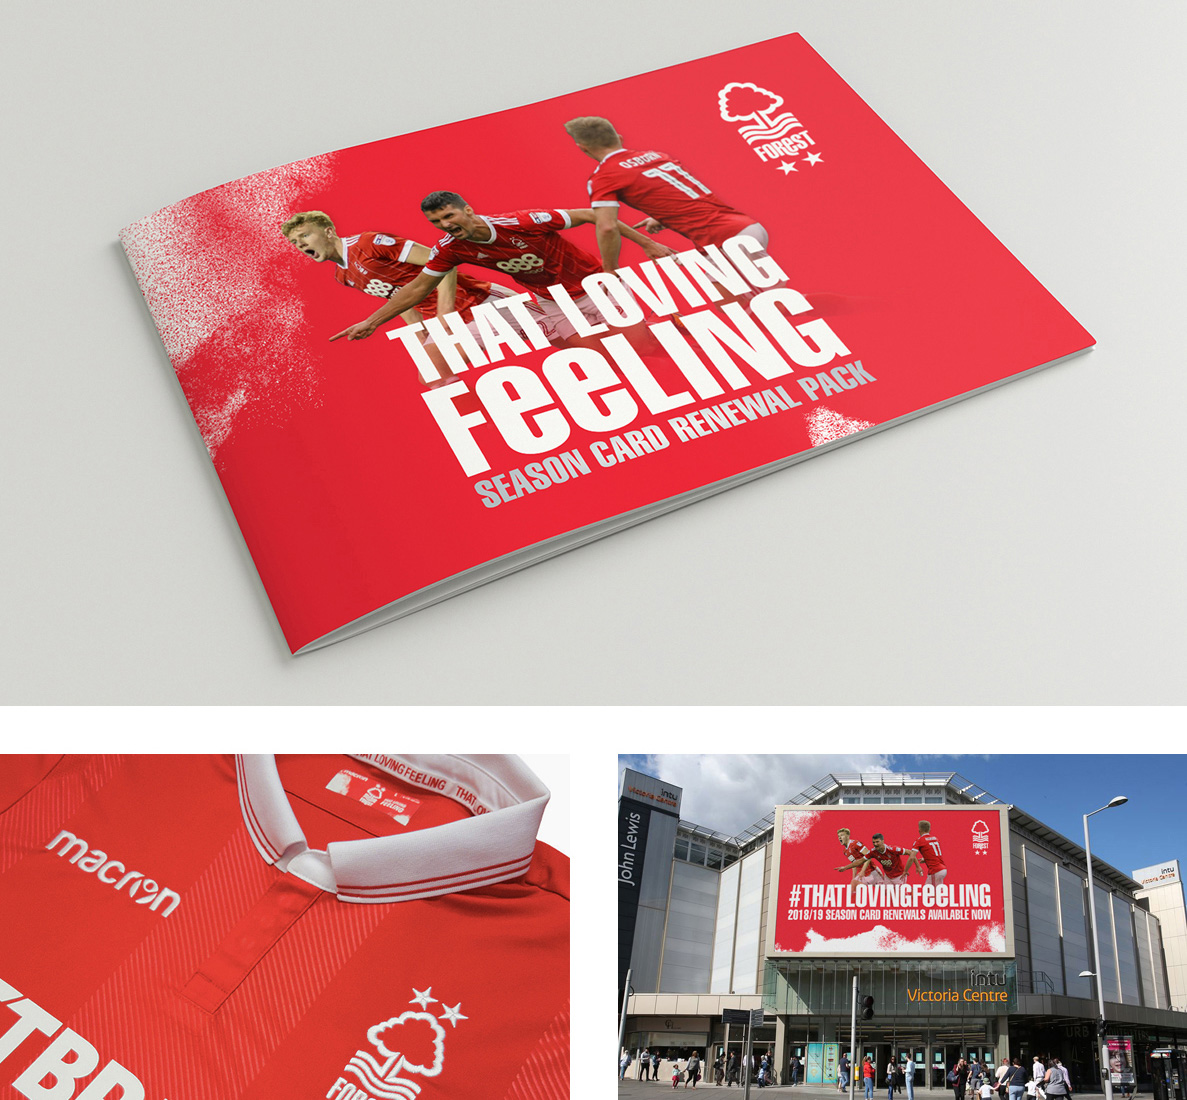 Nottingham Forest 'That Loving Feeling' Marketing Campaign and Season Card Renewal Pack Graphic Design by Kristian Goddar